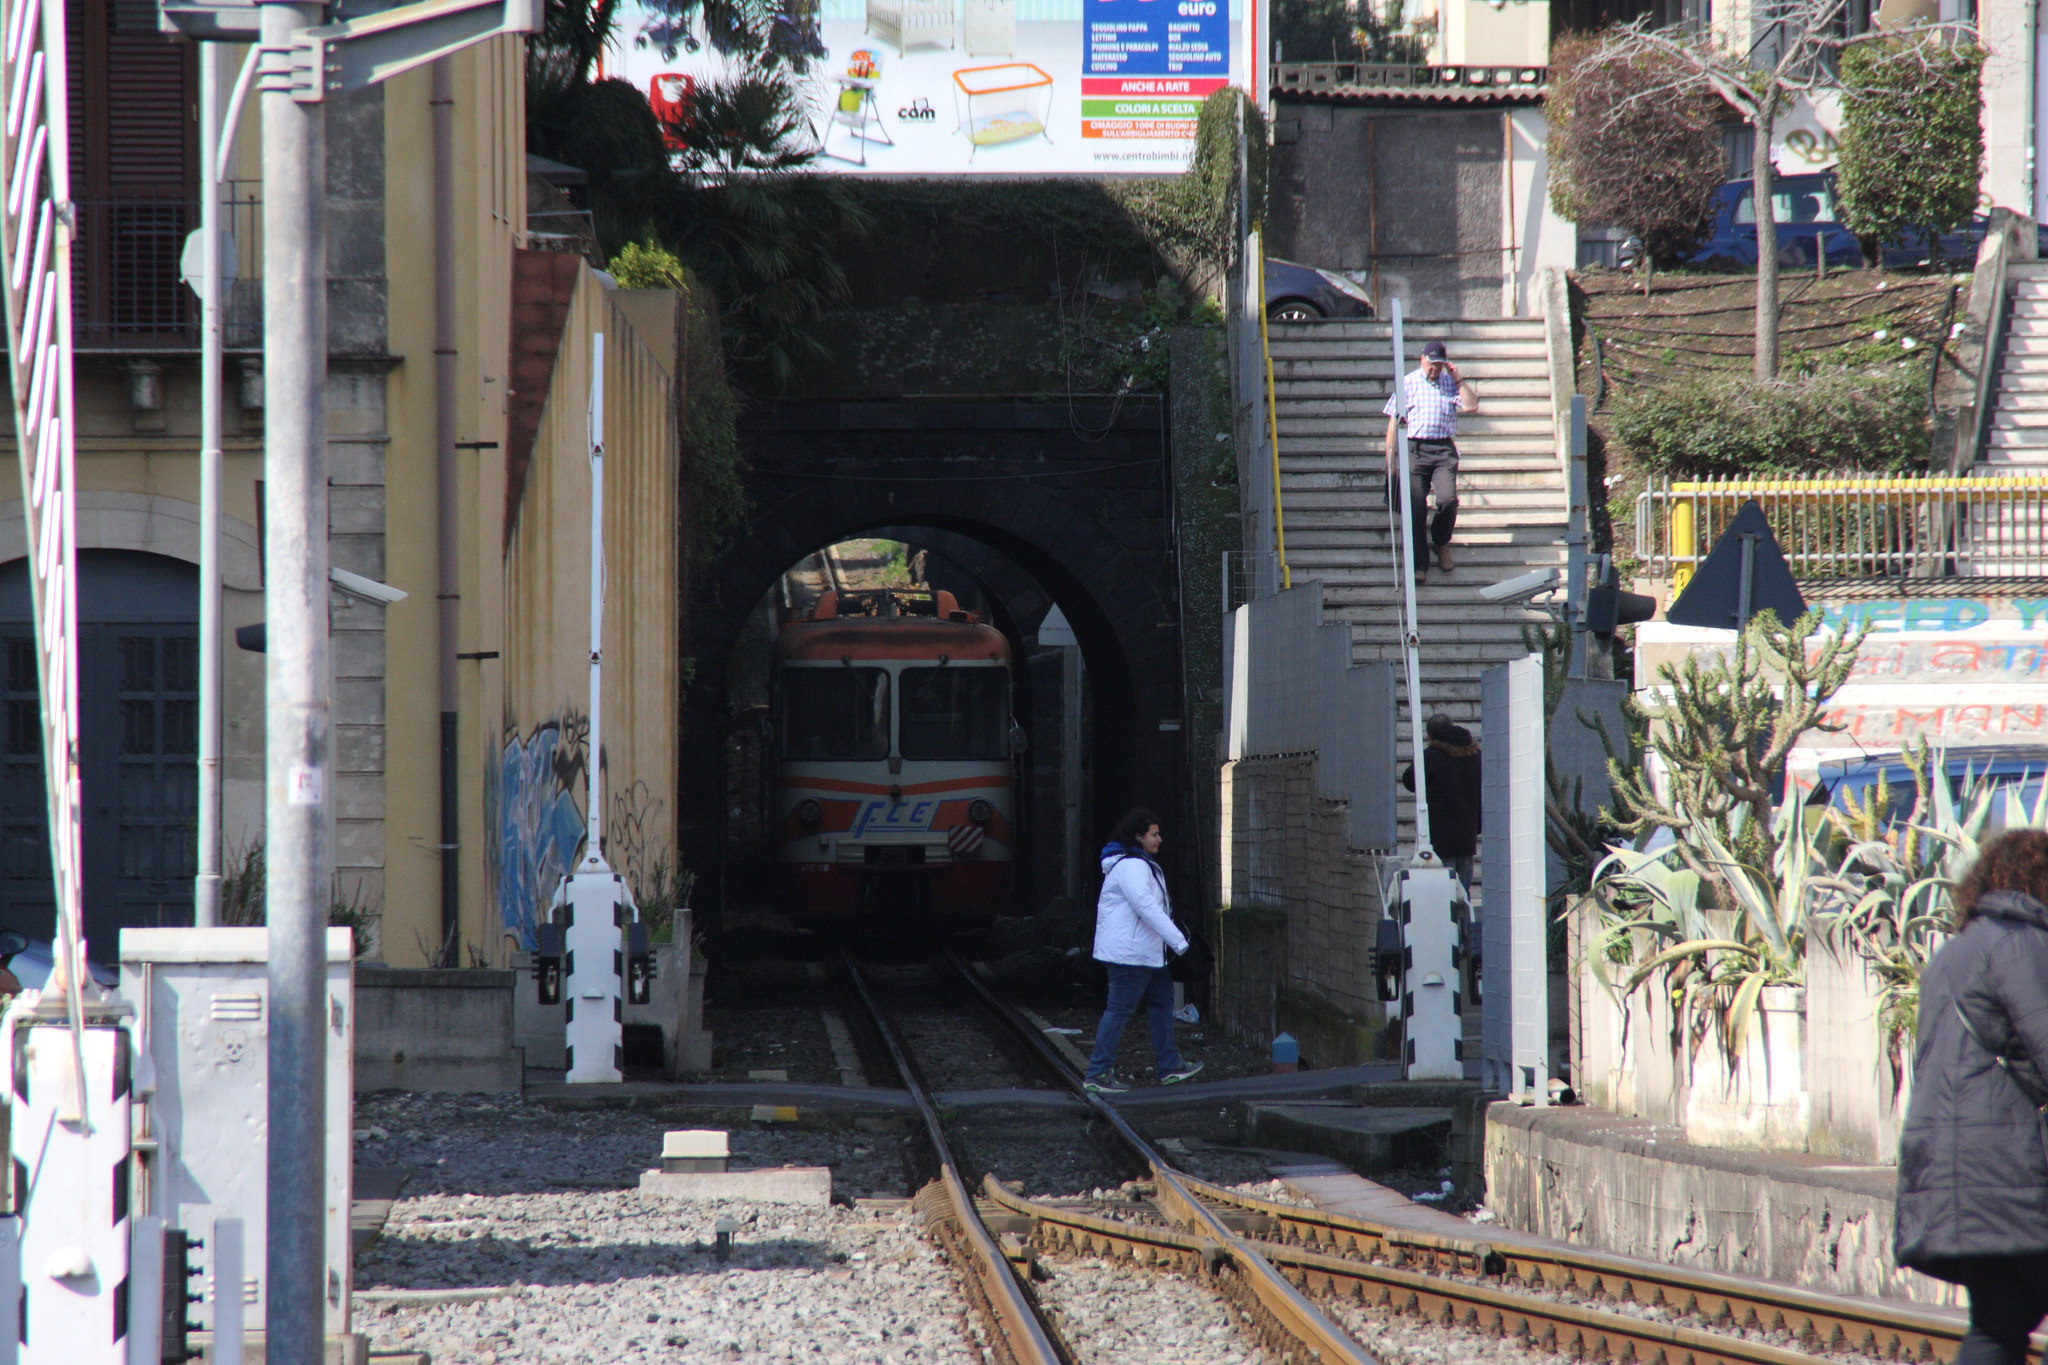 Circumetnea train - Canalicchio, Province of Catania